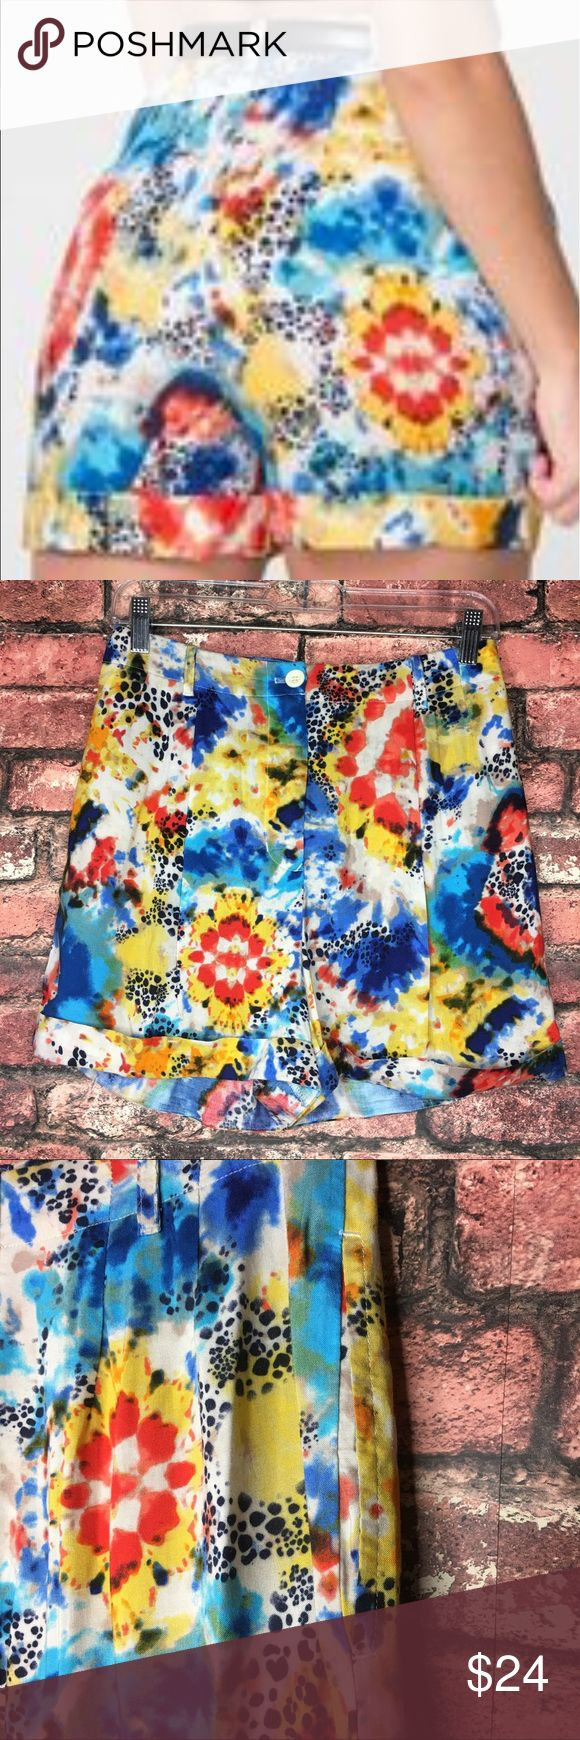 American Apparel Printed Rayon Pleated Cuff Shorts The perfect shorts for the spring and summer time. Great for festivals and vacations. In excellent condition. Waist 13.5 Length 15in Inseam 2.5in American Apparel Shorts